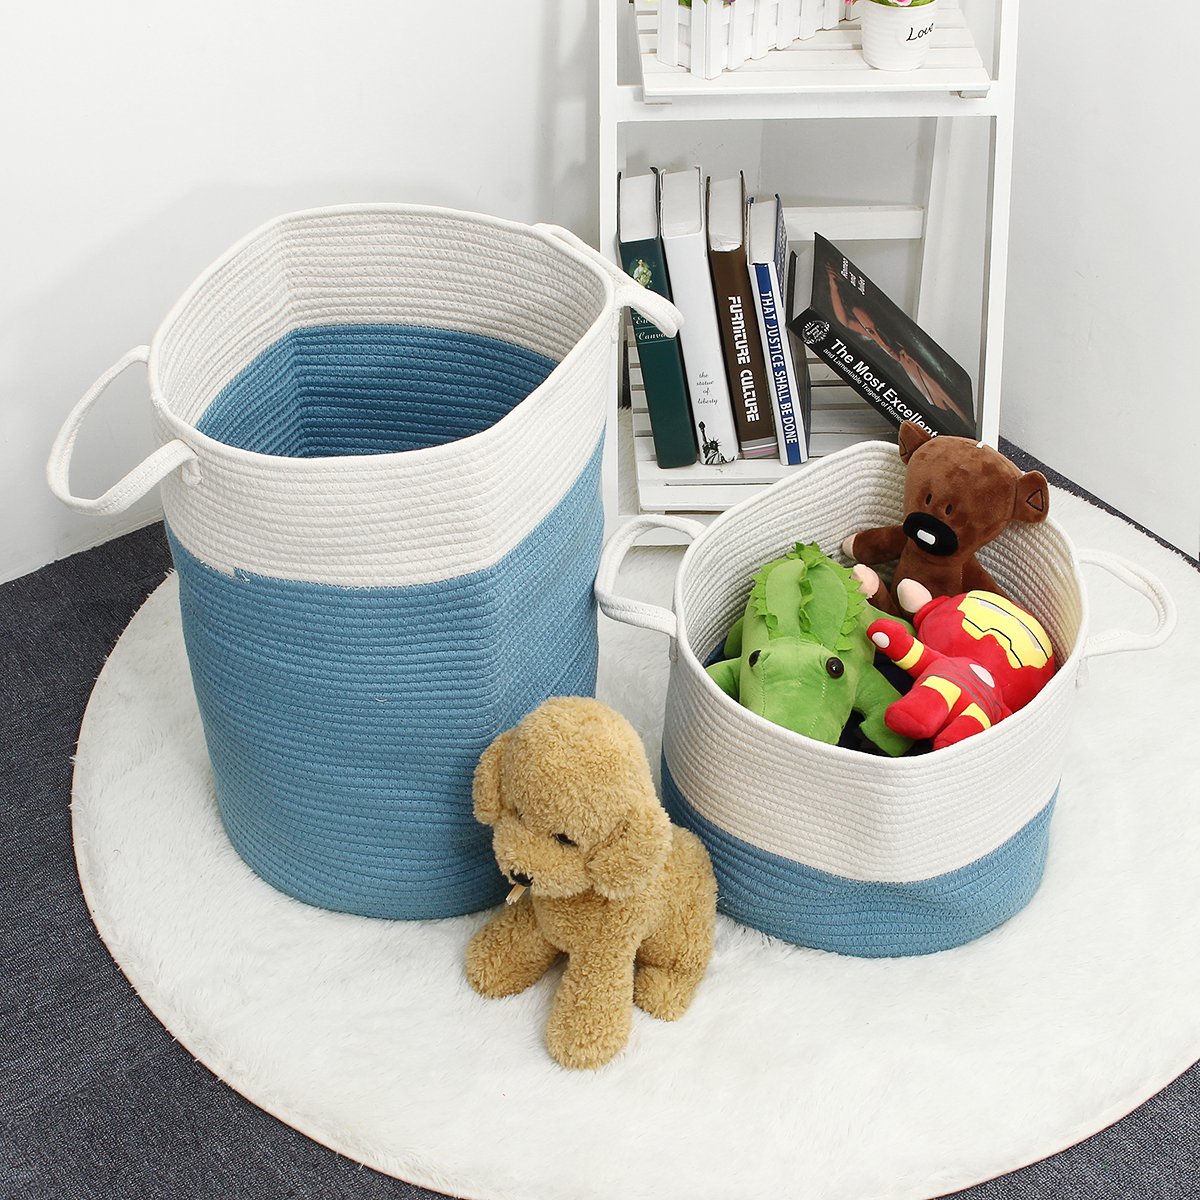 Braided Woven Storage Basket Household Toy Organizer